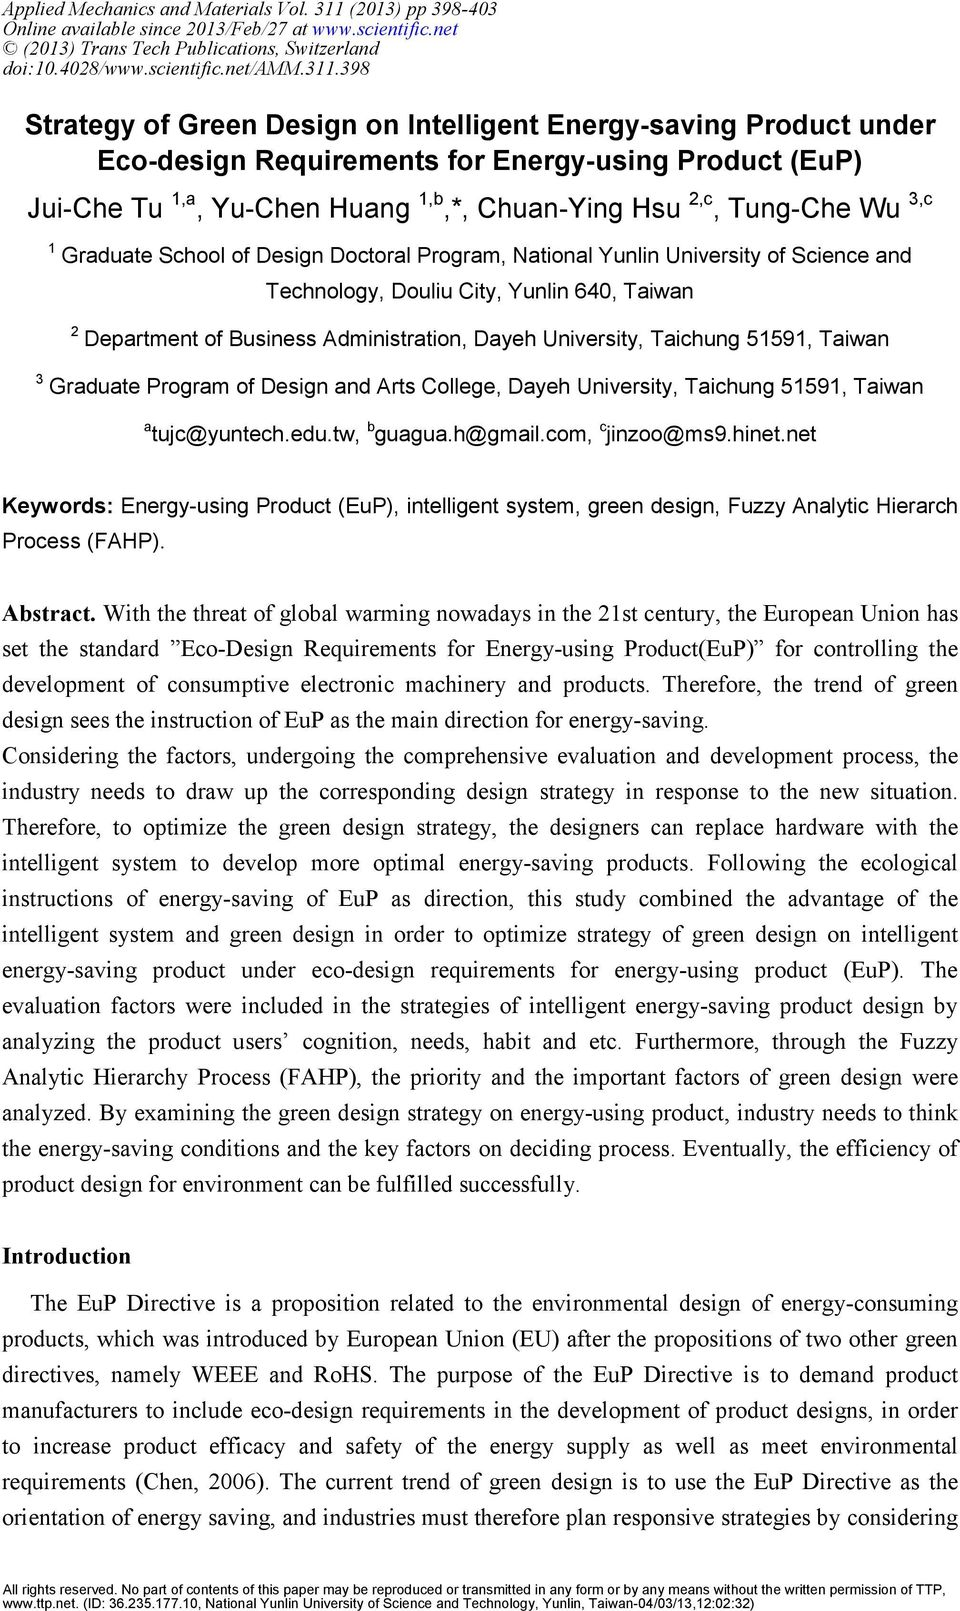 398 Strategy of Green Design on Intelligent Energy-saving Product under Eco-design Requirements for Energy-using Product (EuP) Jui-Che Tu 1,a, Yu-Chen Huang 1,b,*, Chuan-Ying Hsu 2,c, Tung-Che Wu 3,c